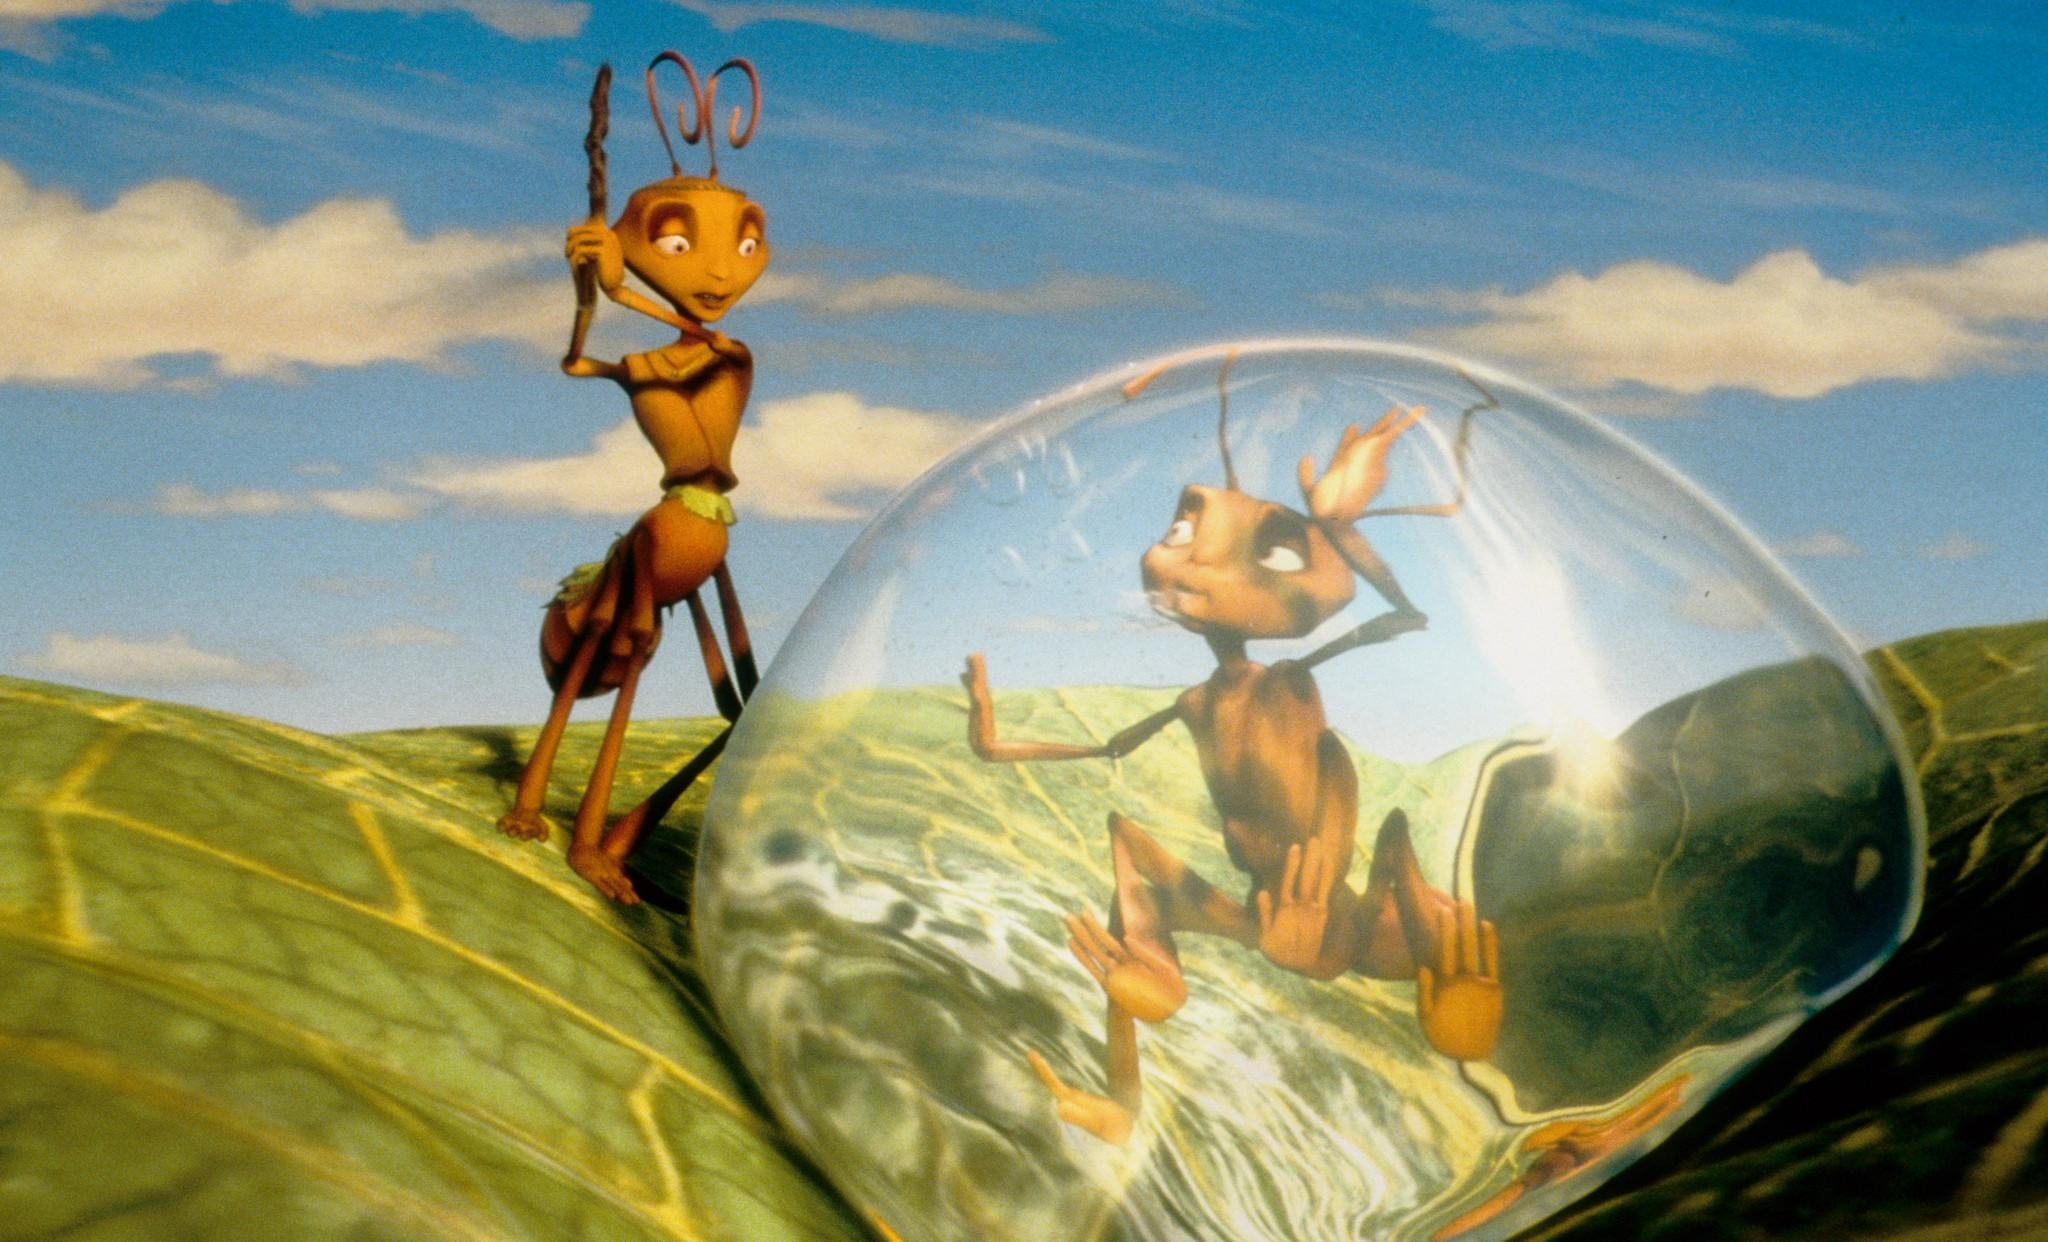 antz wallpaper   Antz Wallpaper 2048x1242 254898 2048x1242